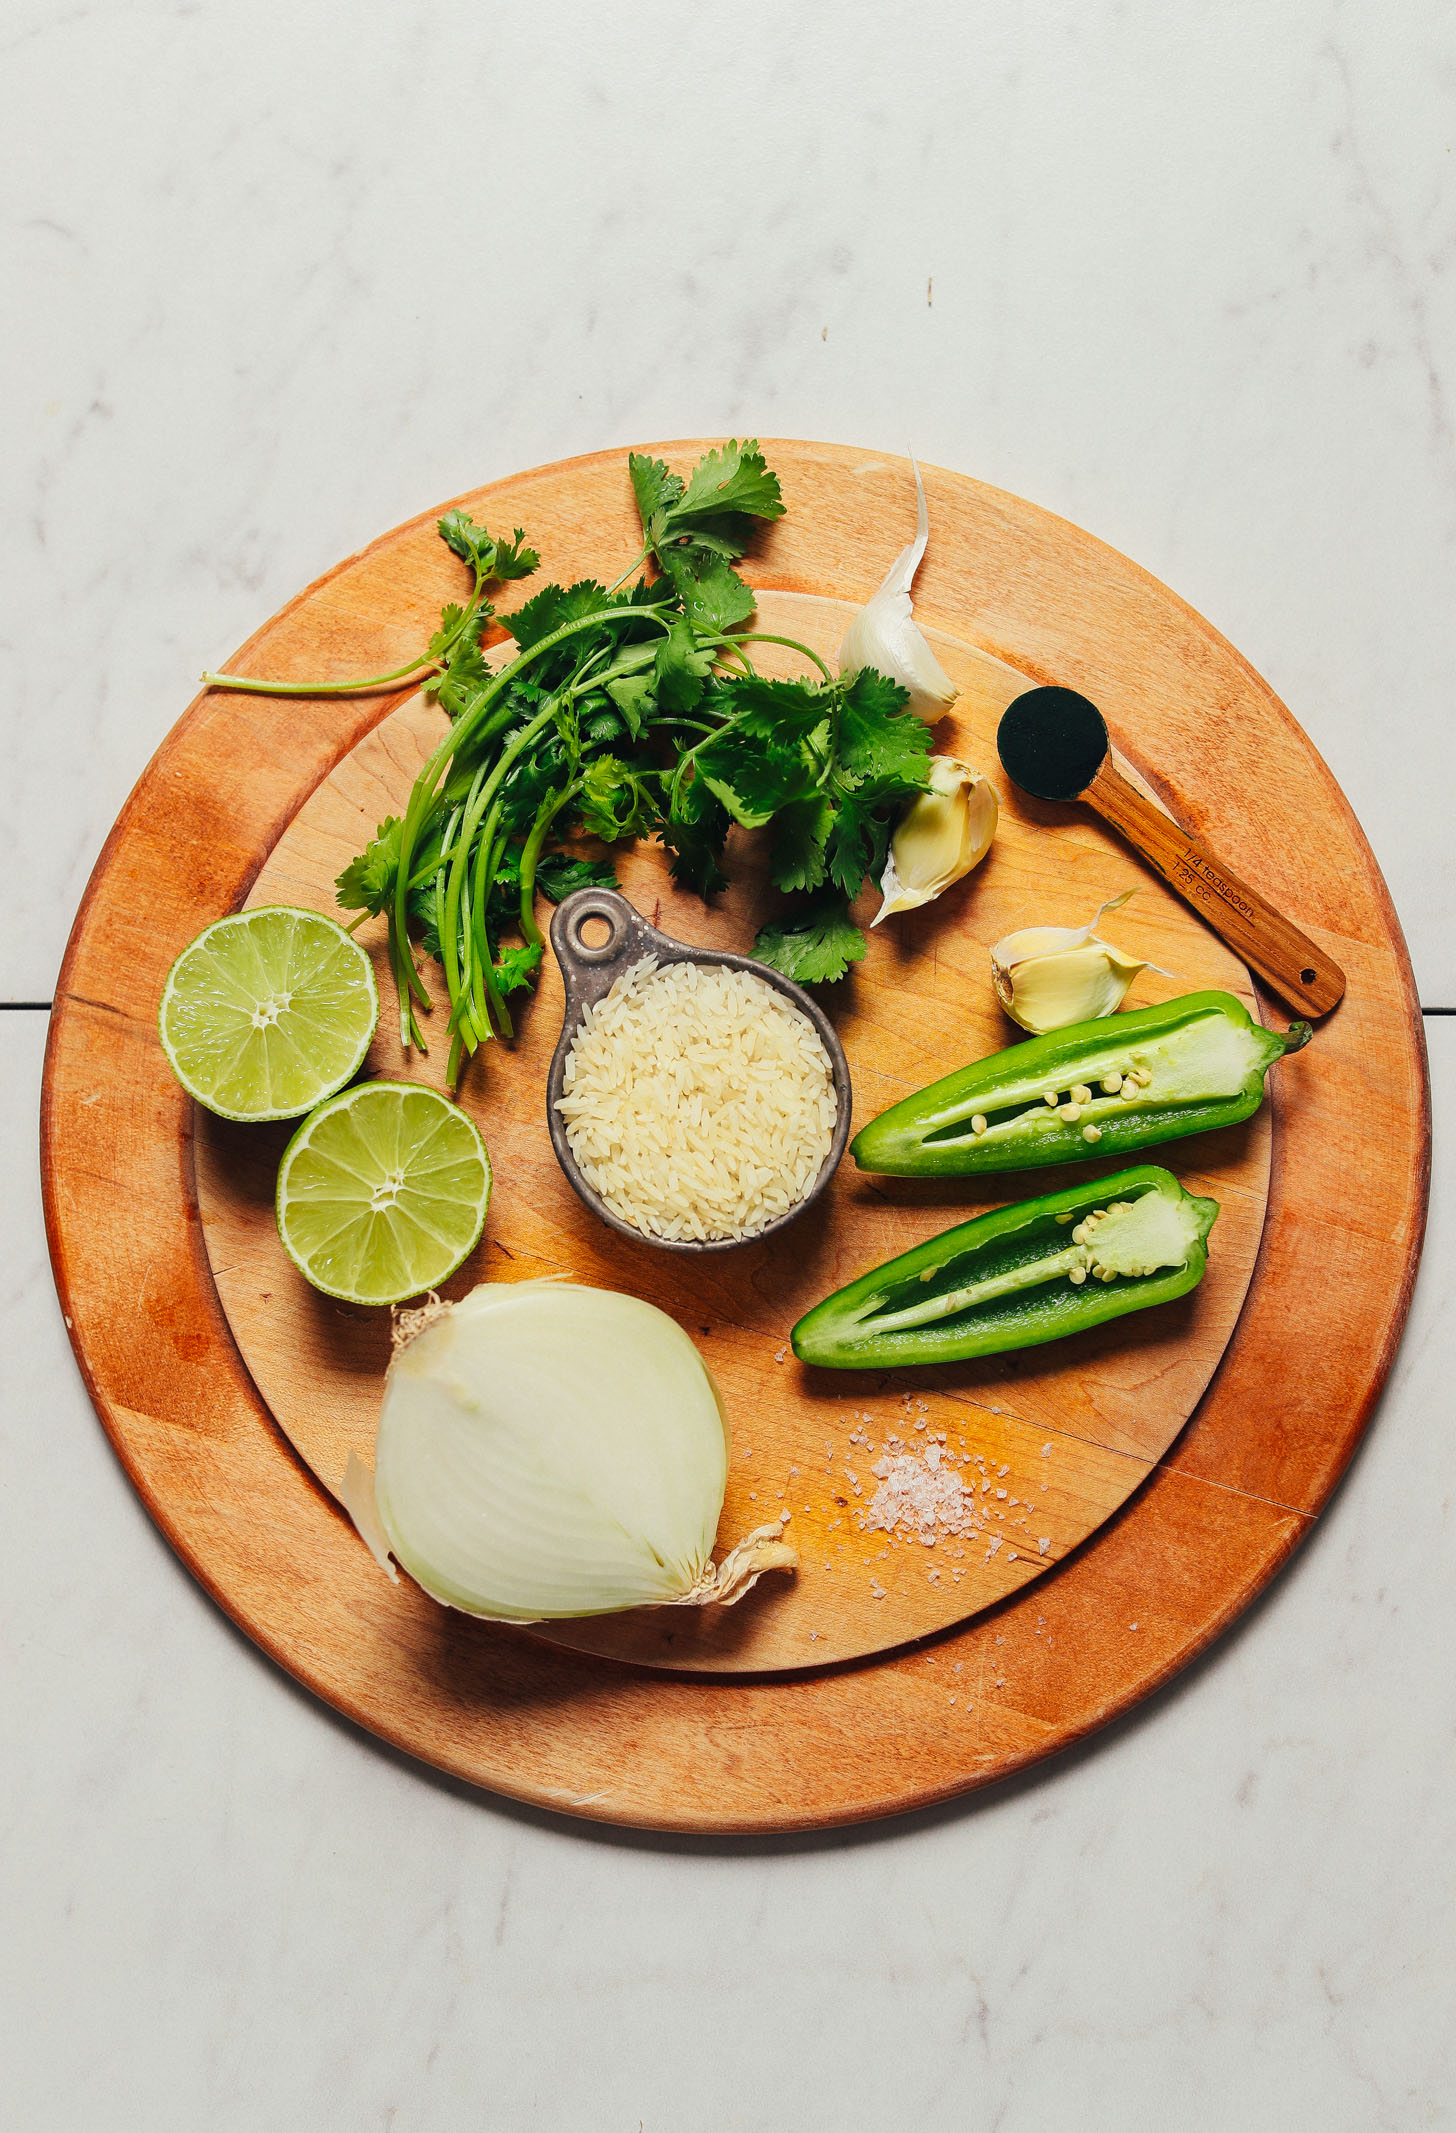 Wood cutting board with ingredients for making our Mexican-inspired Green Rice recipe